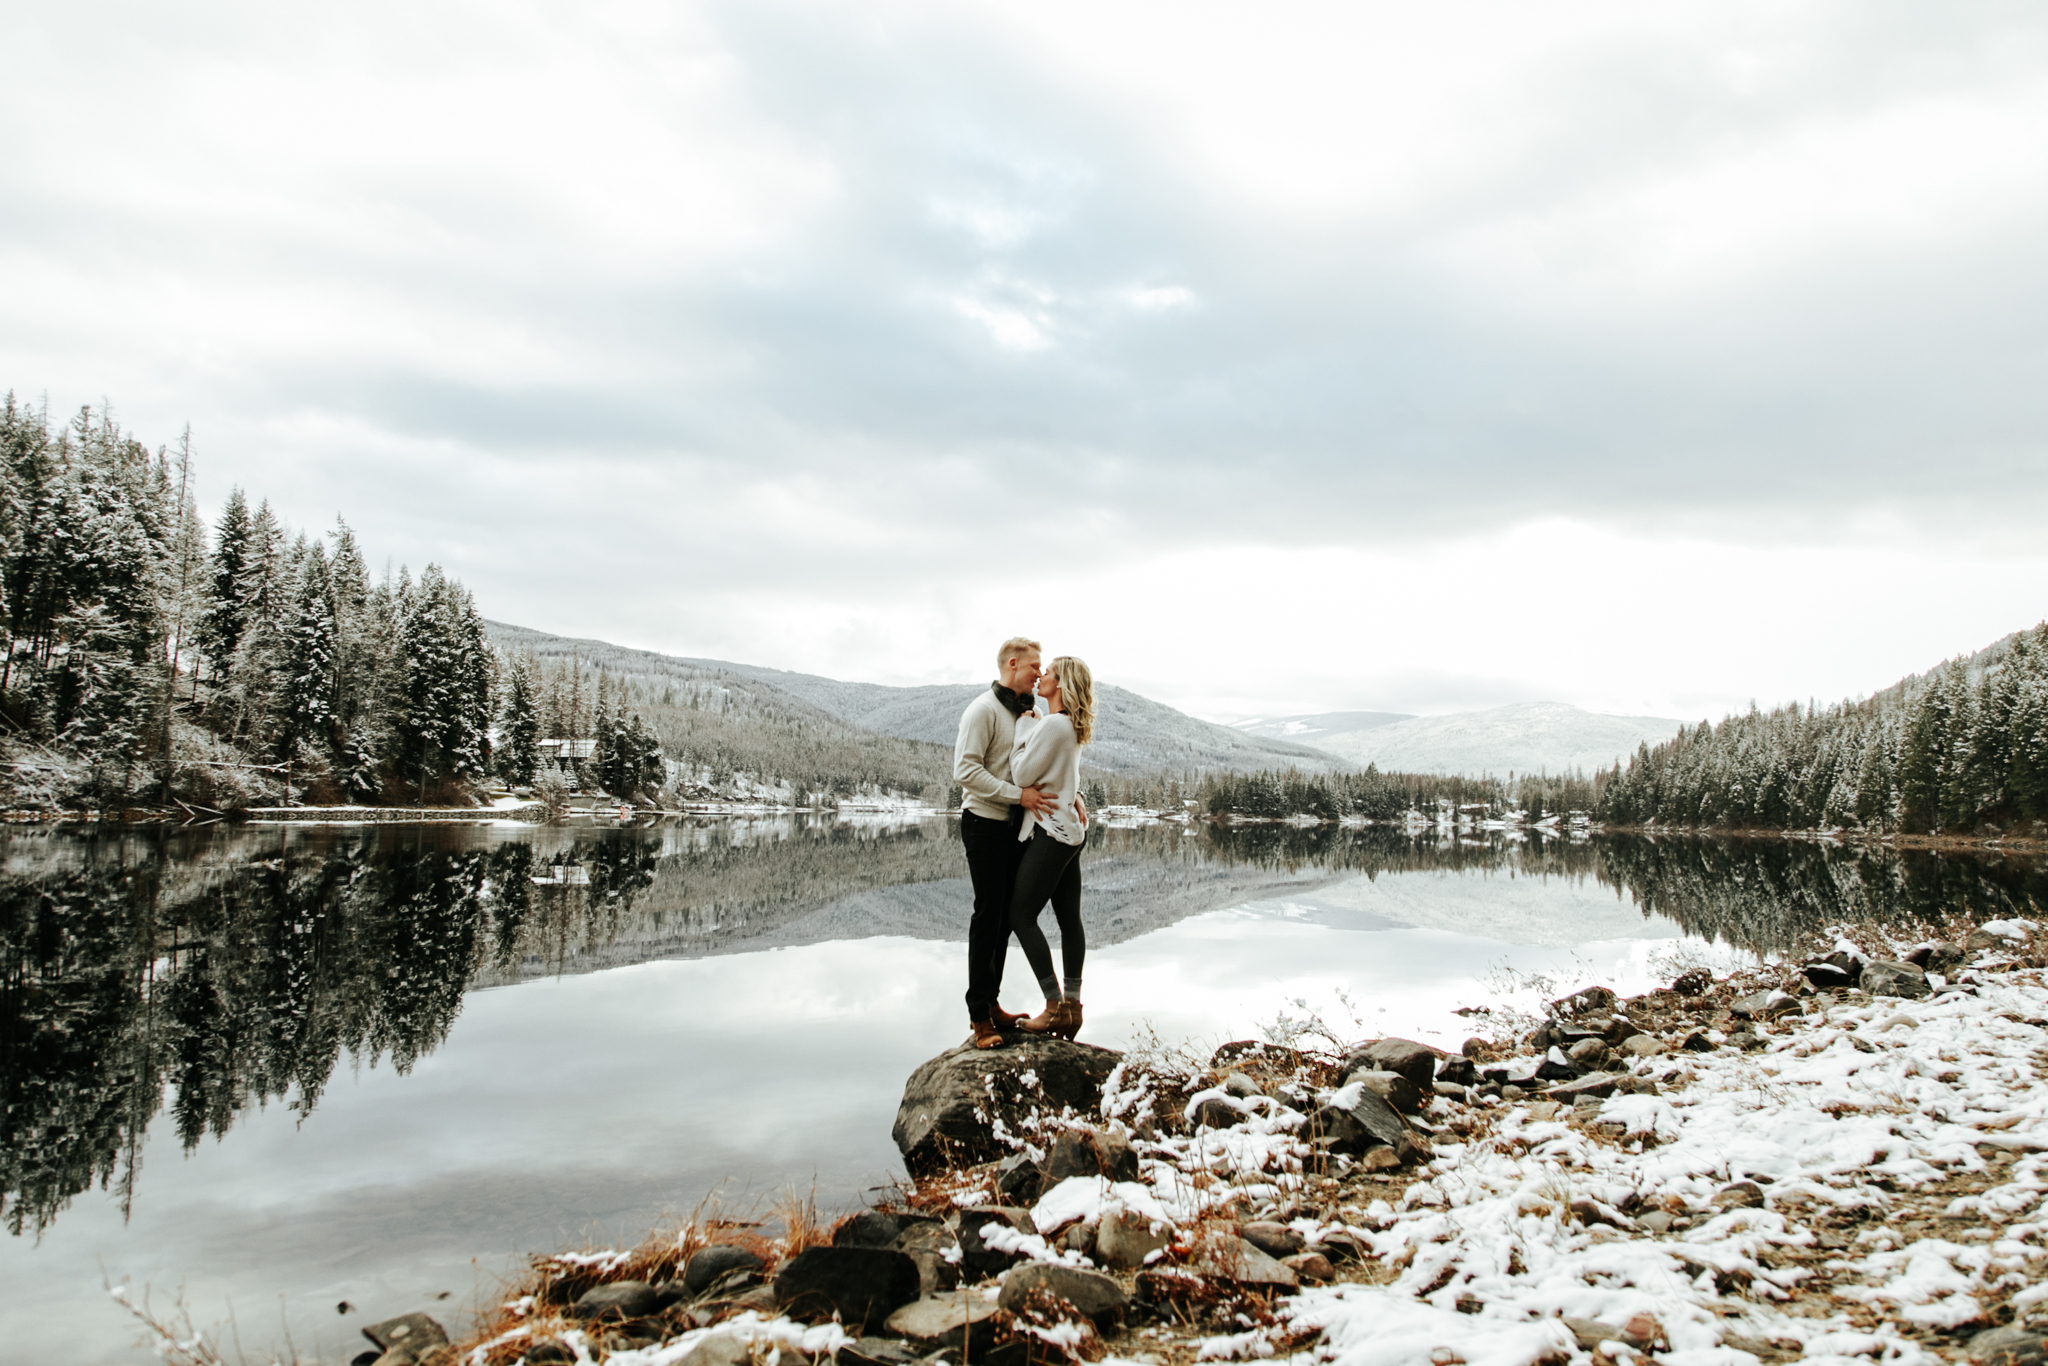 love-and-be-loved-photography-mountain-engagement-ashlyn-rob-perfect-fit-4-u-photo-image-picture-25.jpg